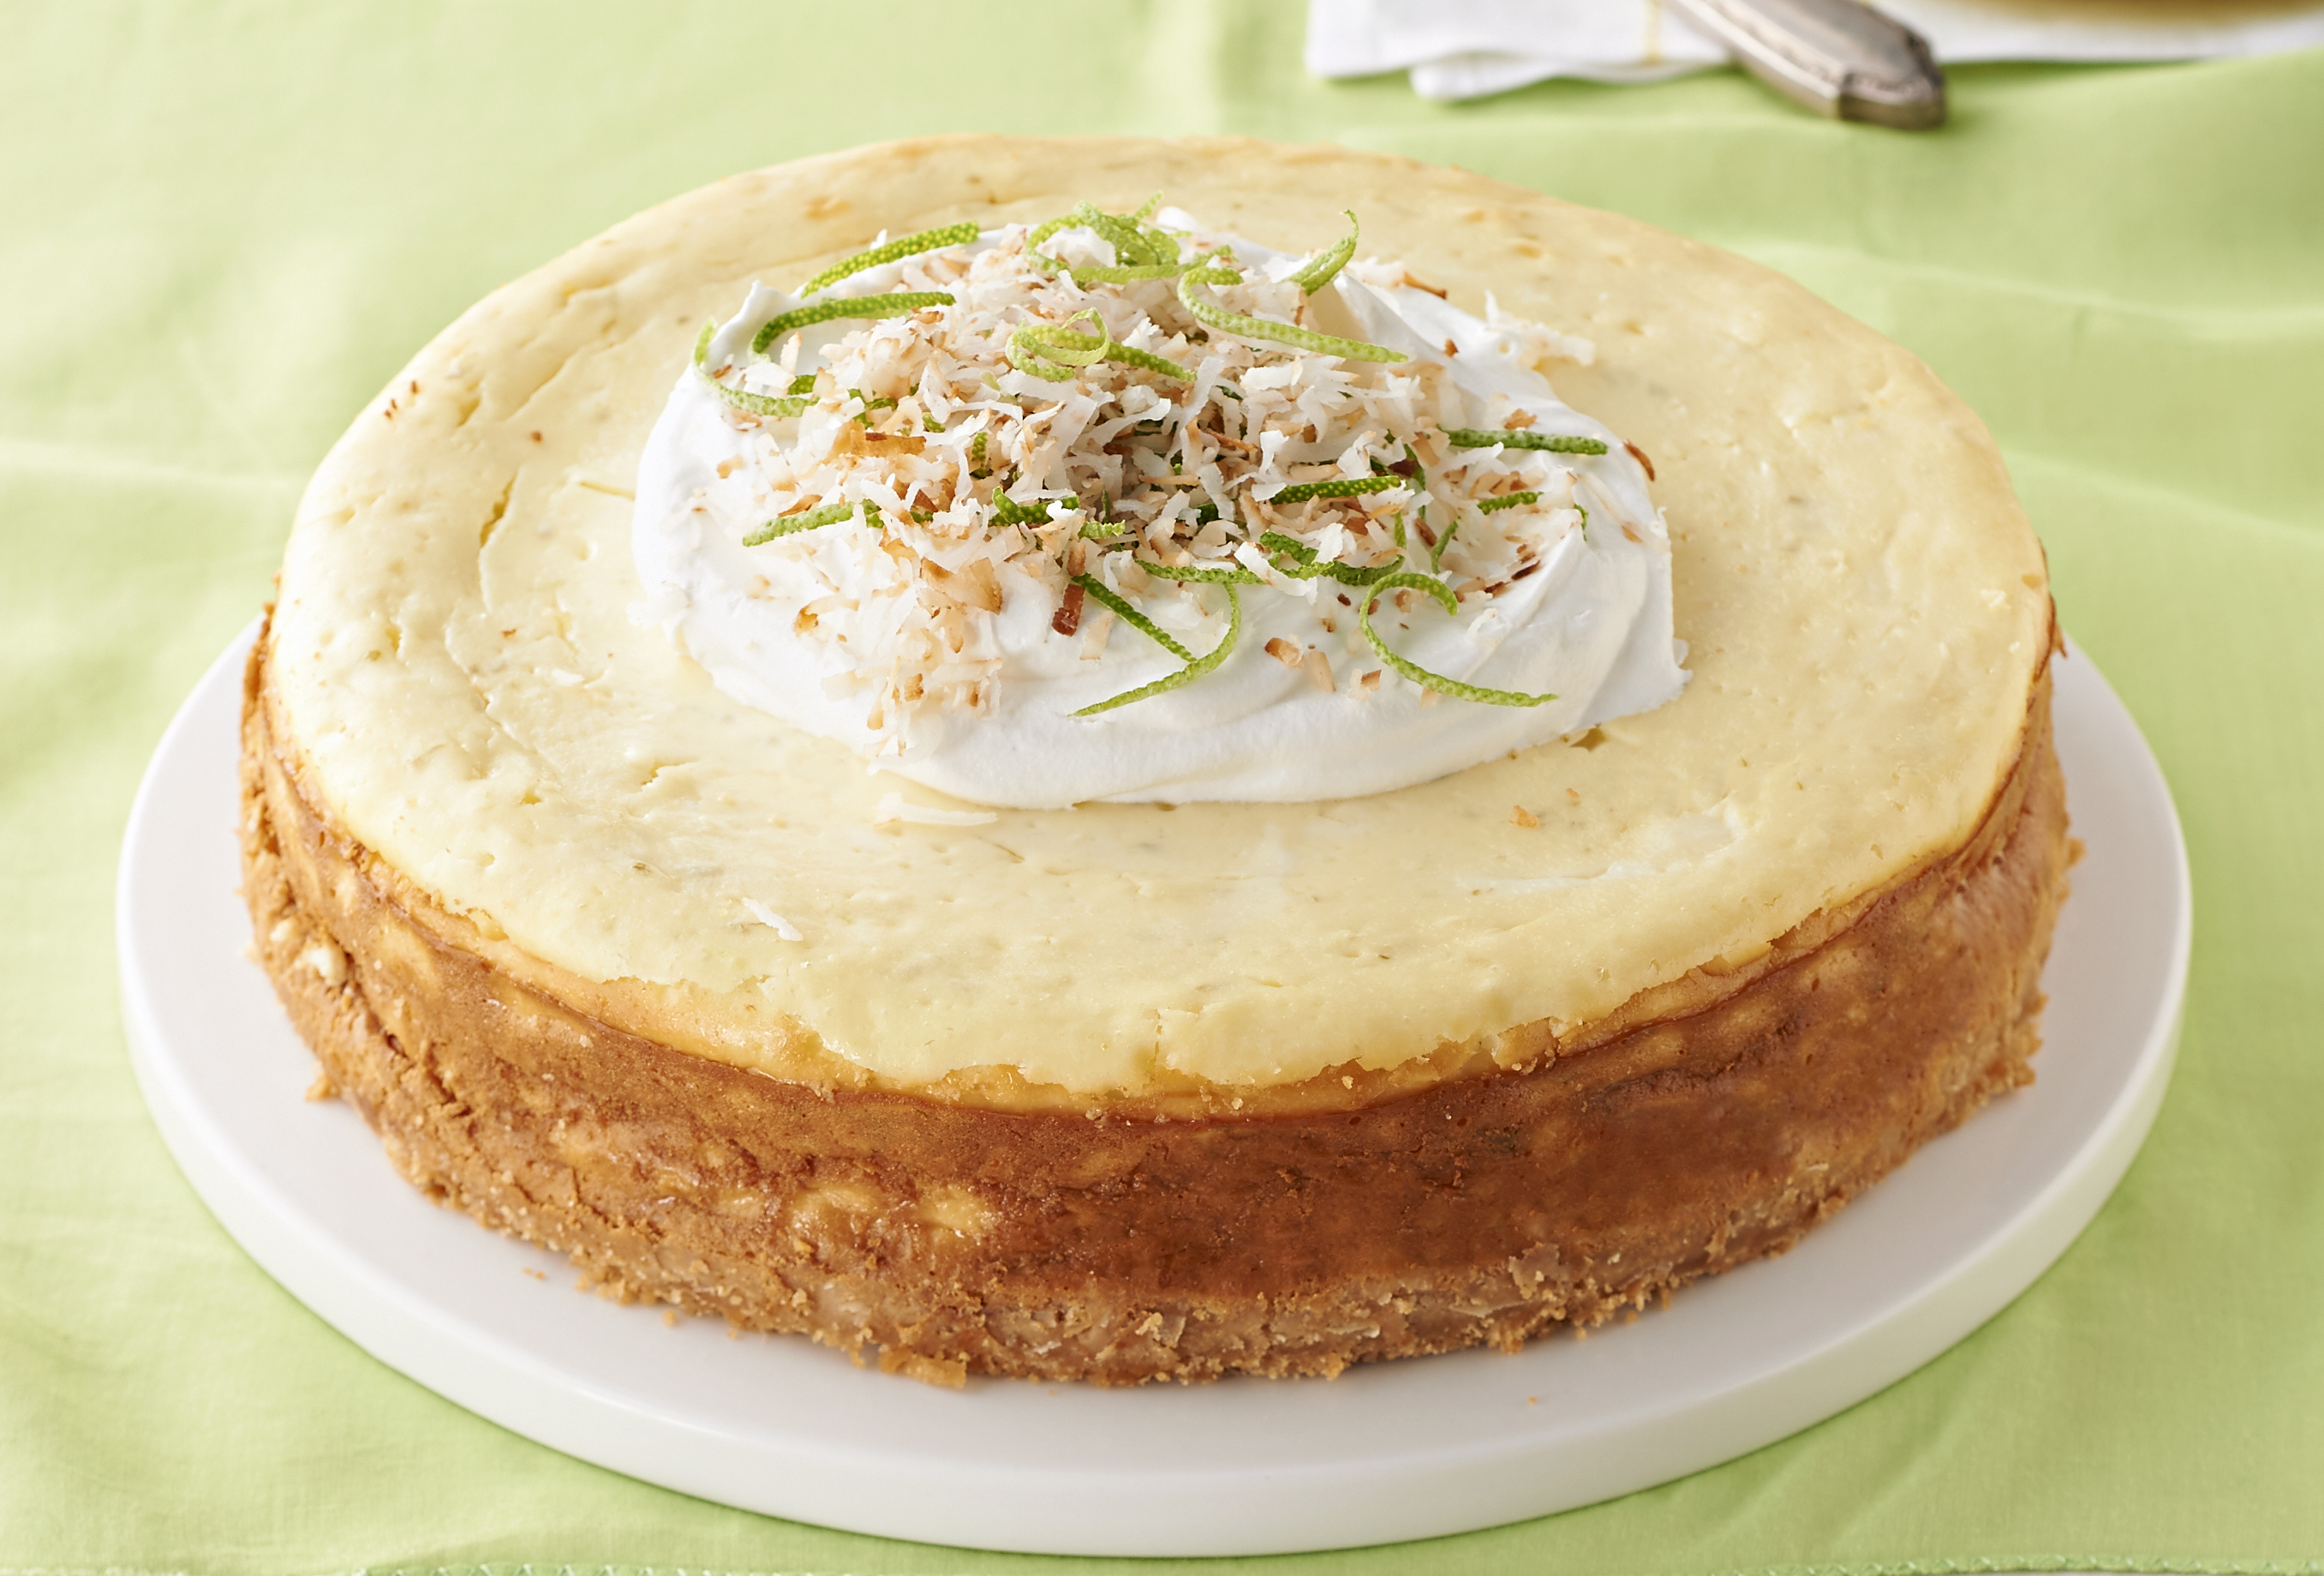 Floribbean Lime Cheesecake Image 1